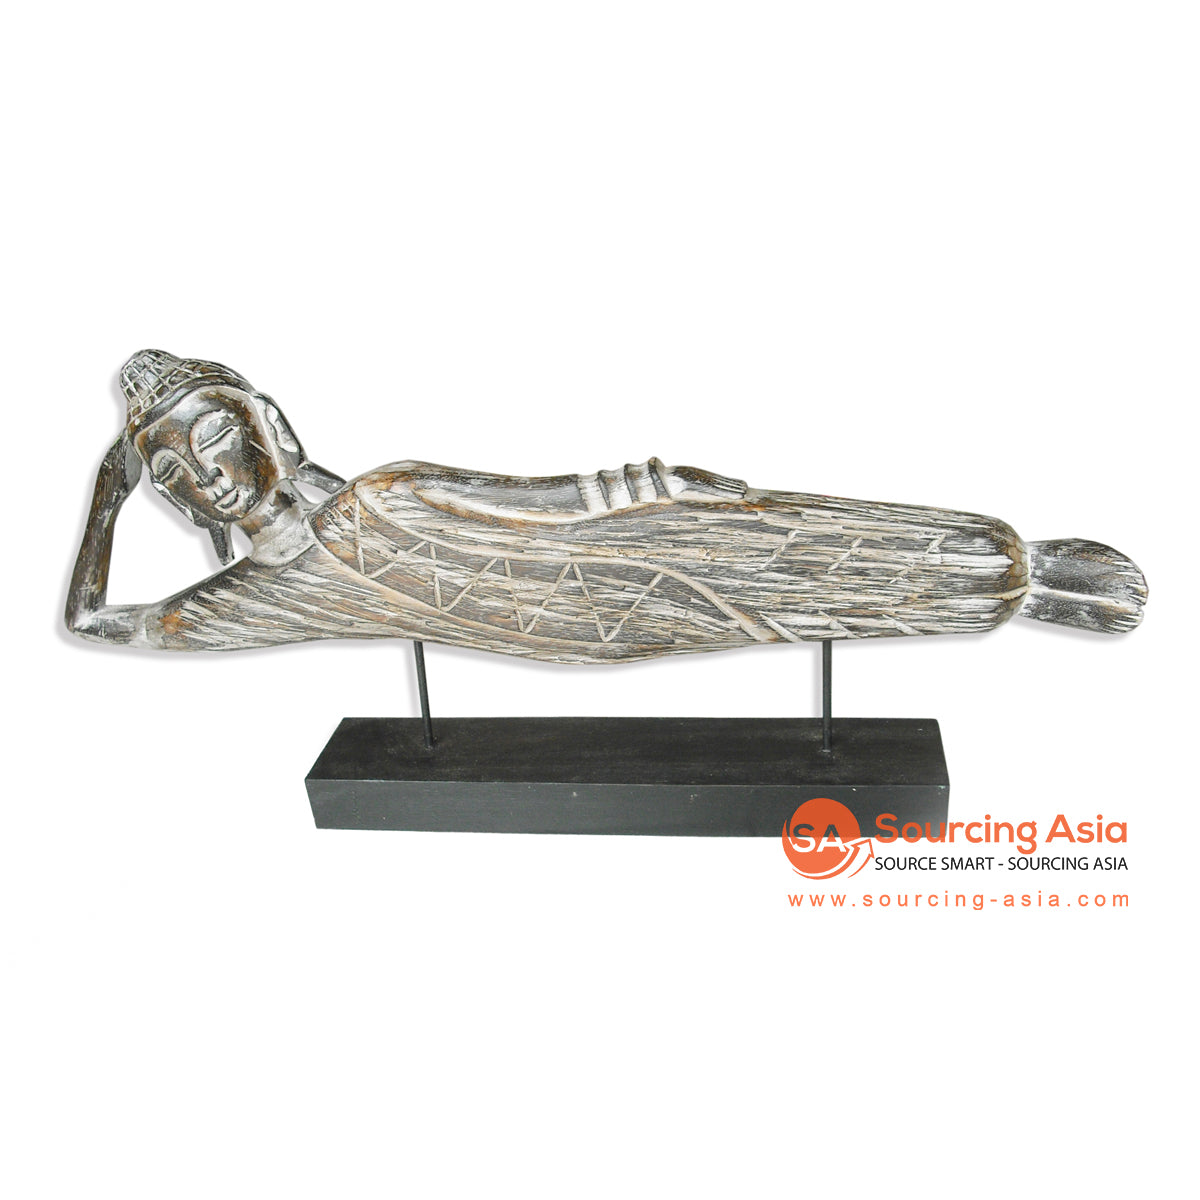 STWD019-60BRW SLEEPING BUDDHA ON STAND